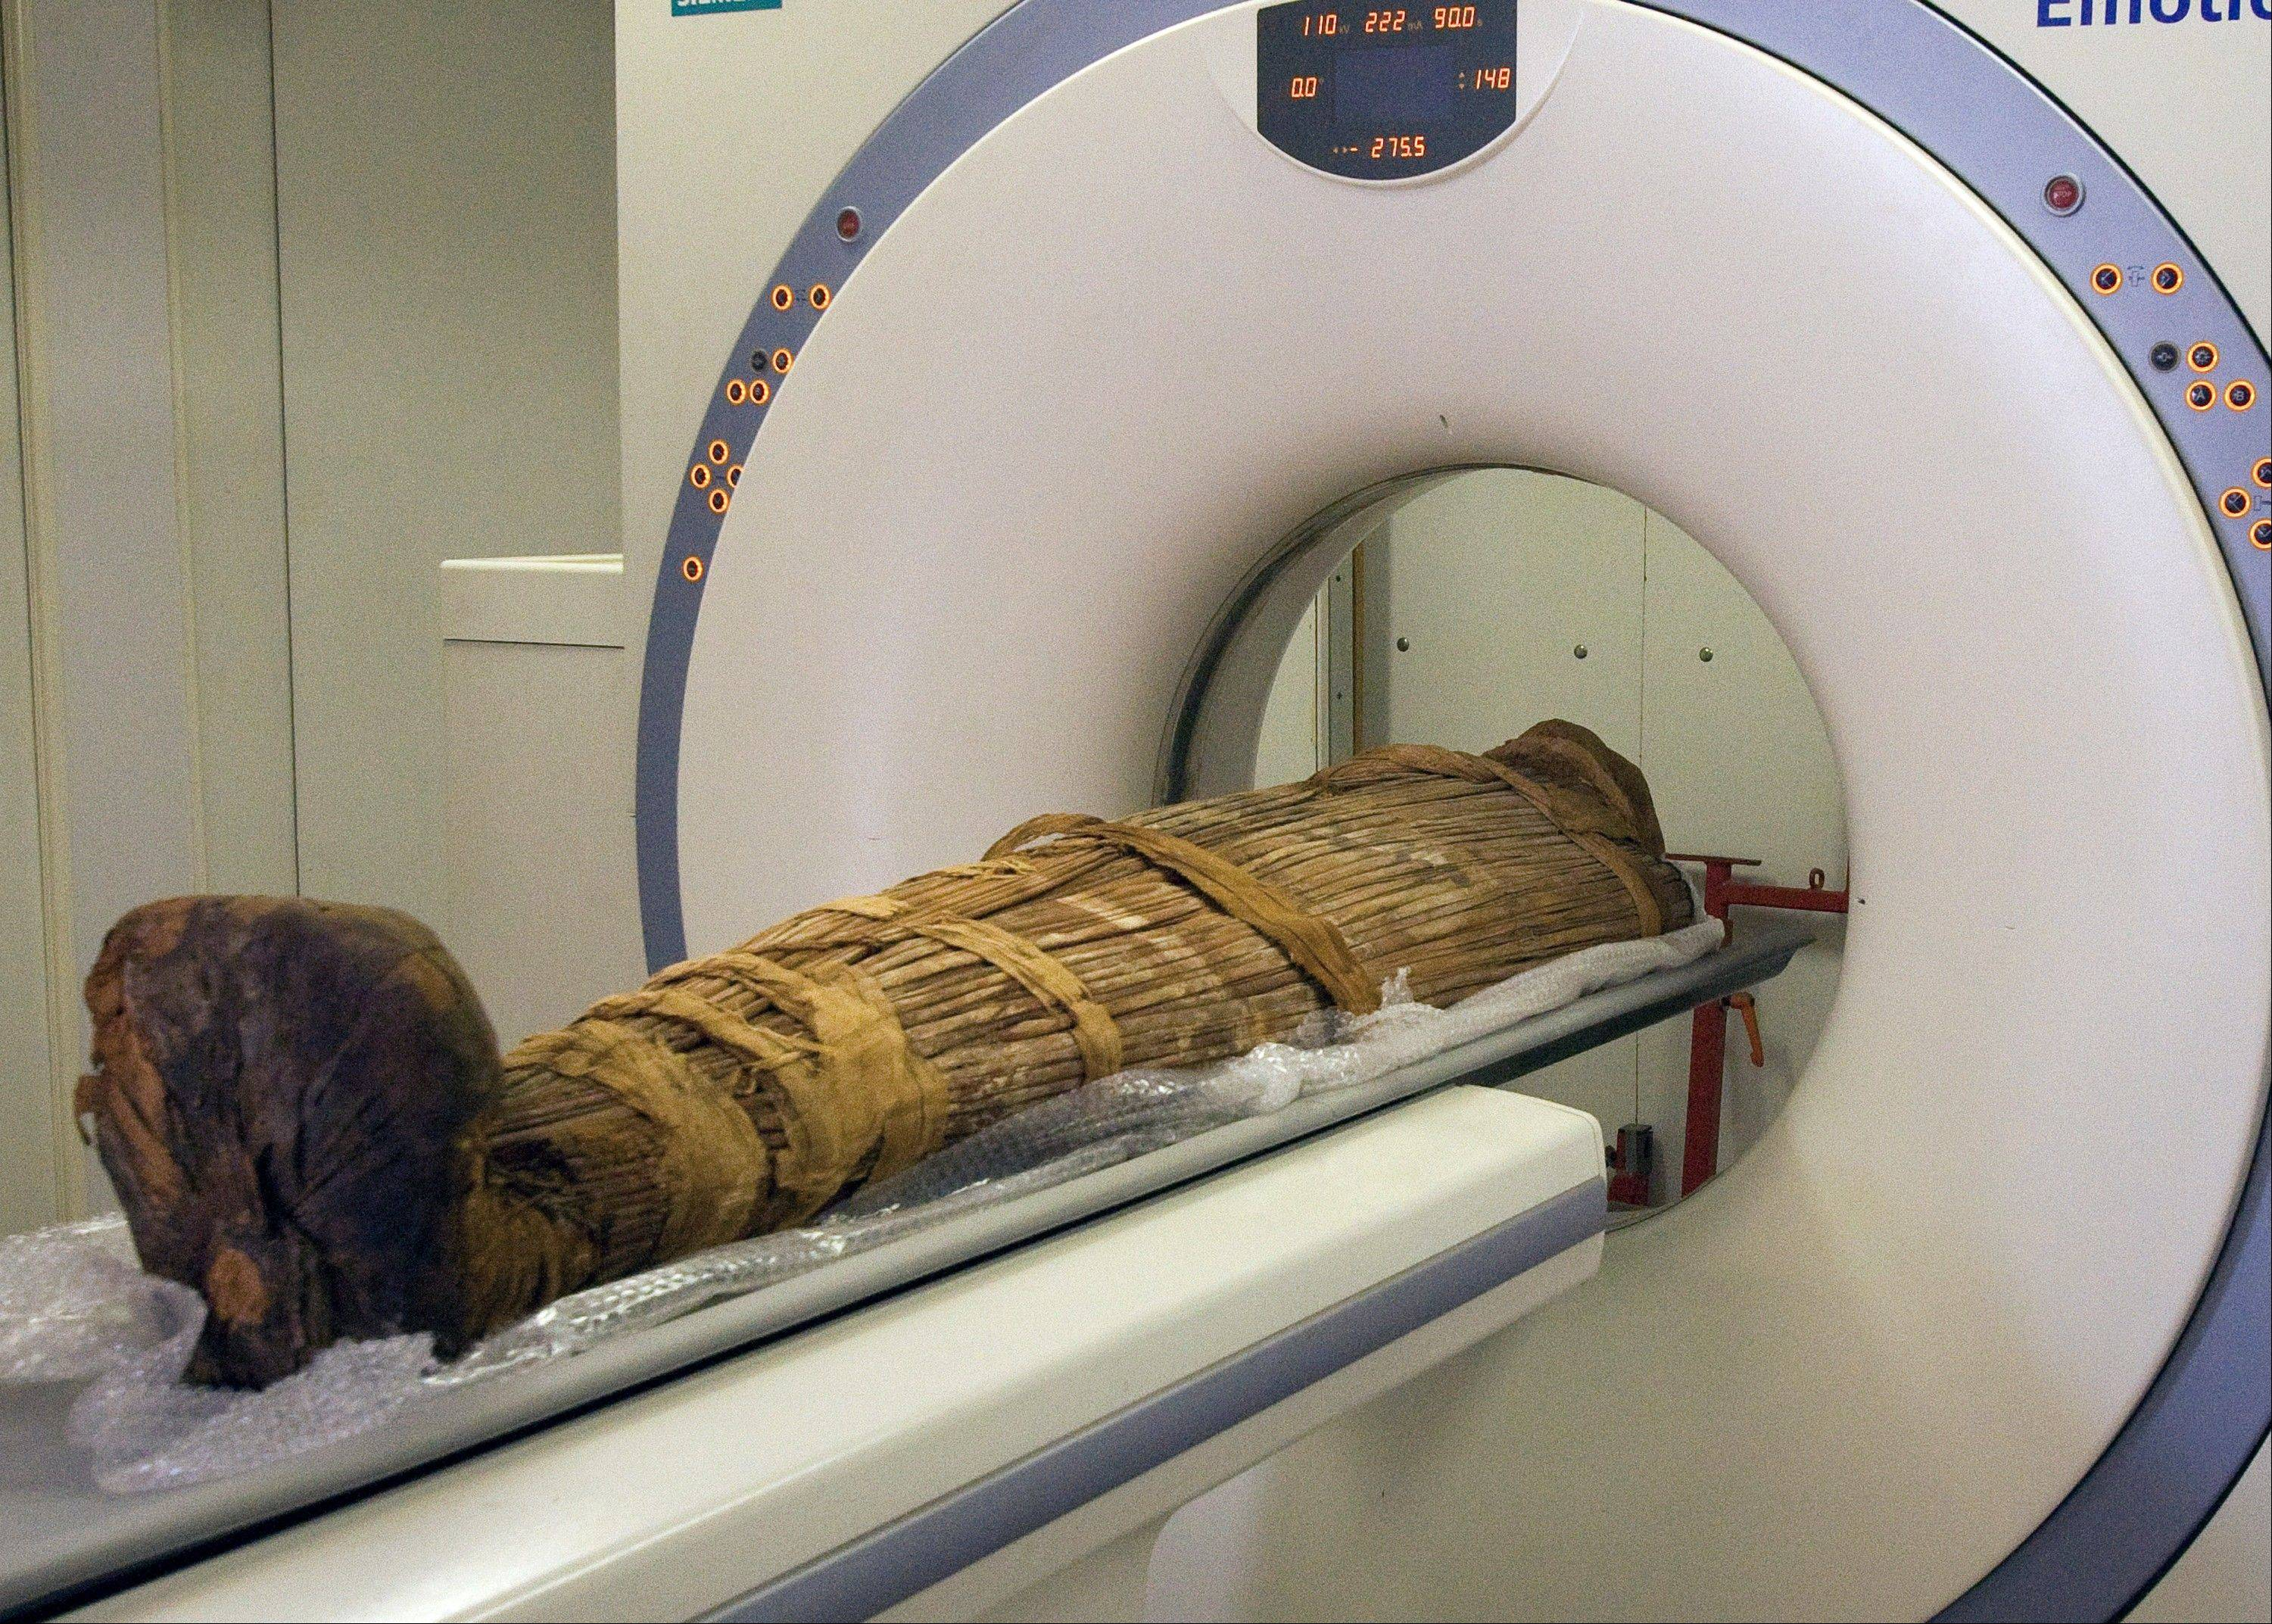 The mummy Hatiay (New Kingdom, 18th Dynasty, 1550 to 1295 BCE) being scanned in CAiro, Egypt, where it was found to have evidence of extensive vascular disease by CT scanning. This scanning is part of a major survey to investigate some 137 mummies which has revealed that people probably had clogged arteries and heart disease some 4,000 years ago.